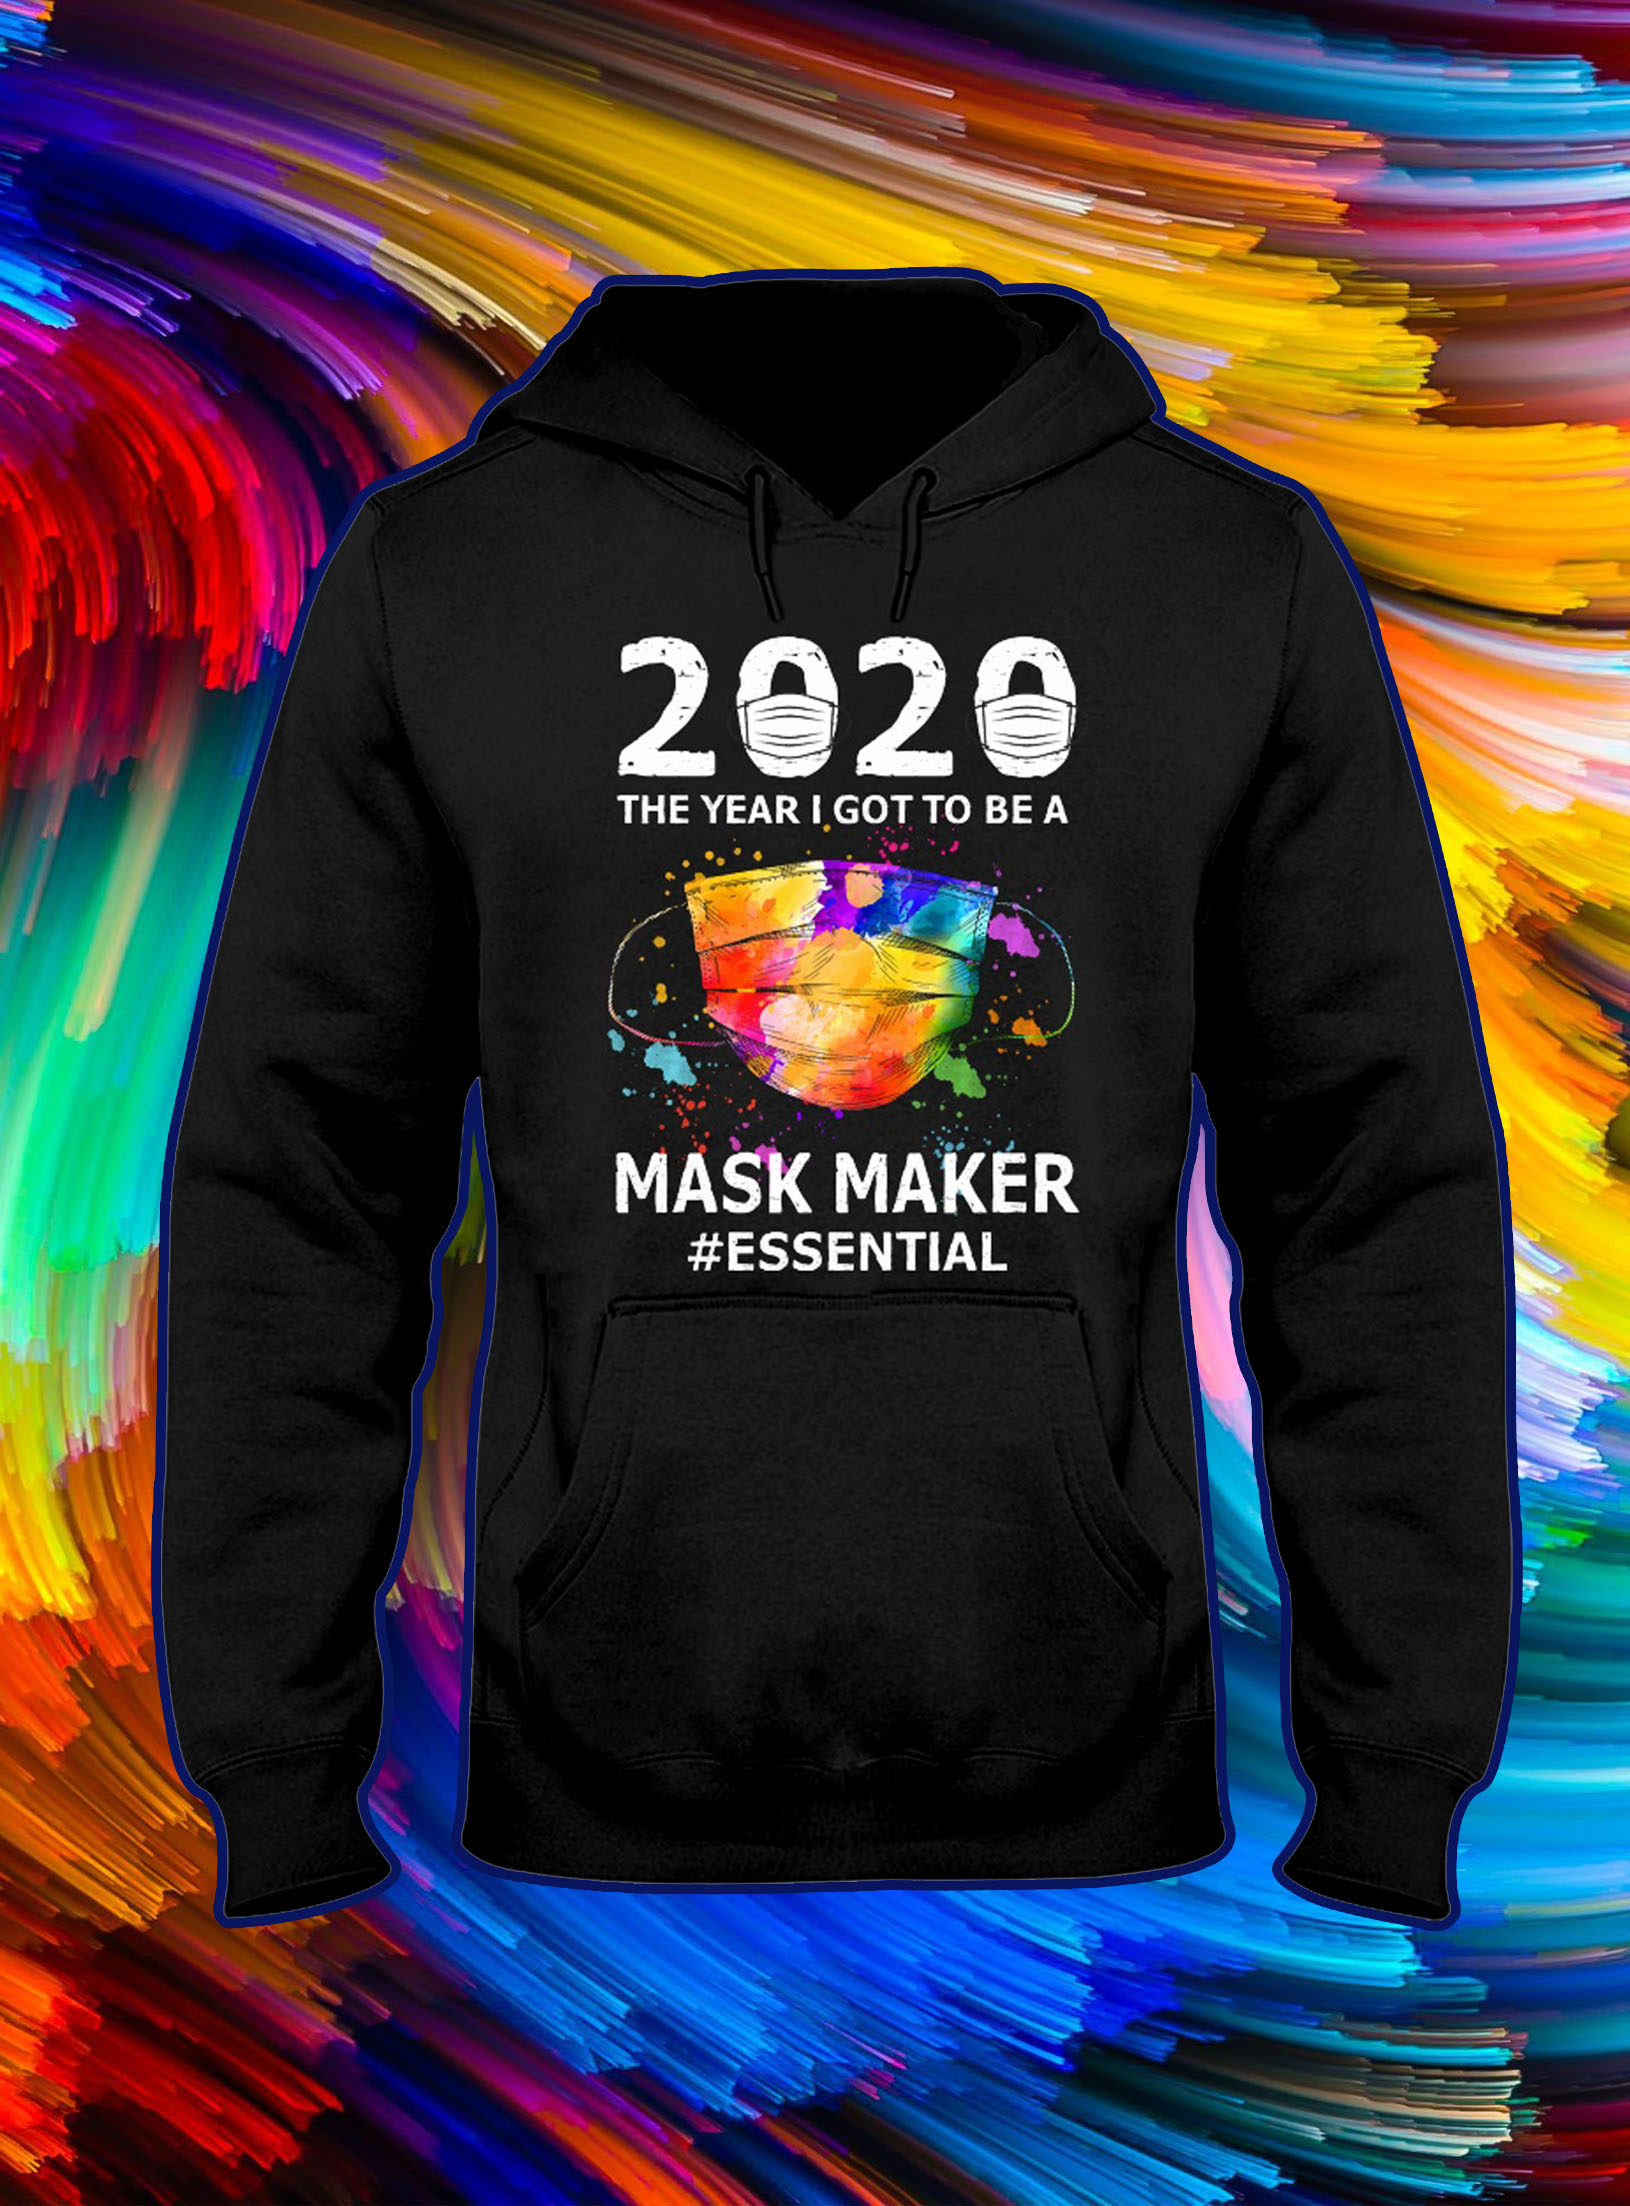 2020 the year i got to be a mask maker essential hoodie